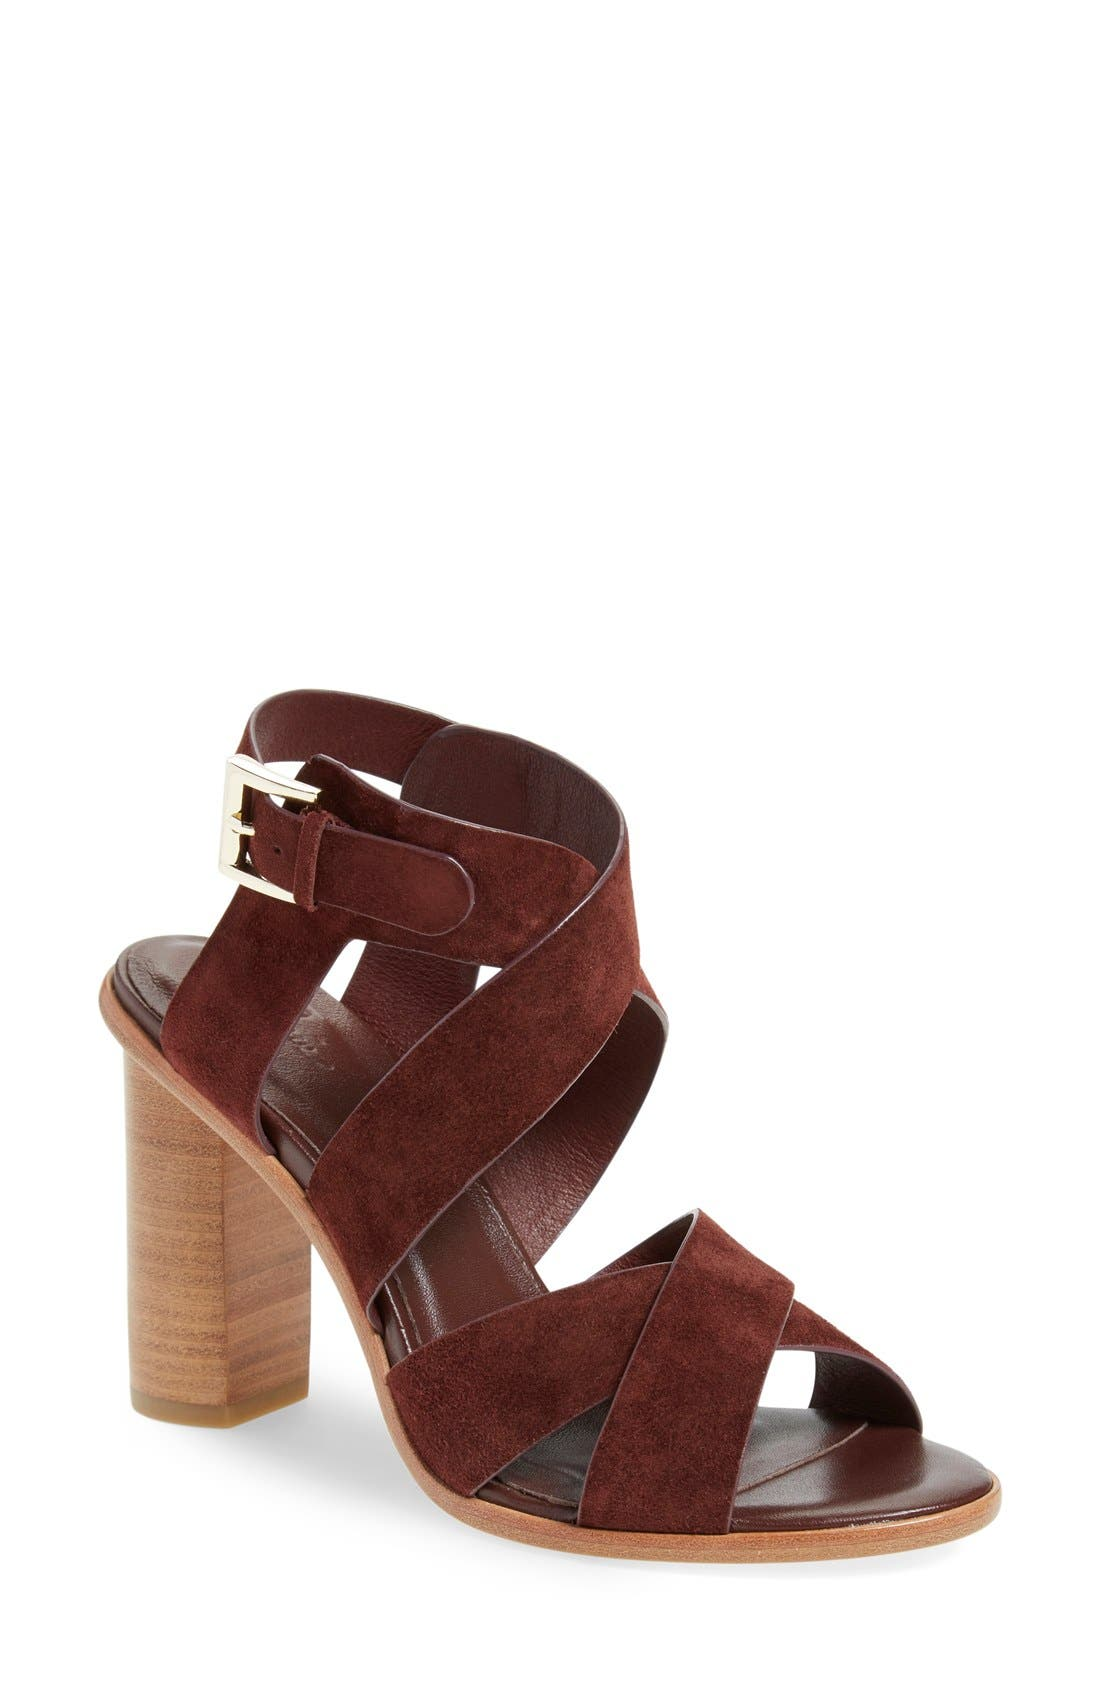 'Avery' Crisscross Block Heel Sandal,                         Main,                         color, Oxblood Suede